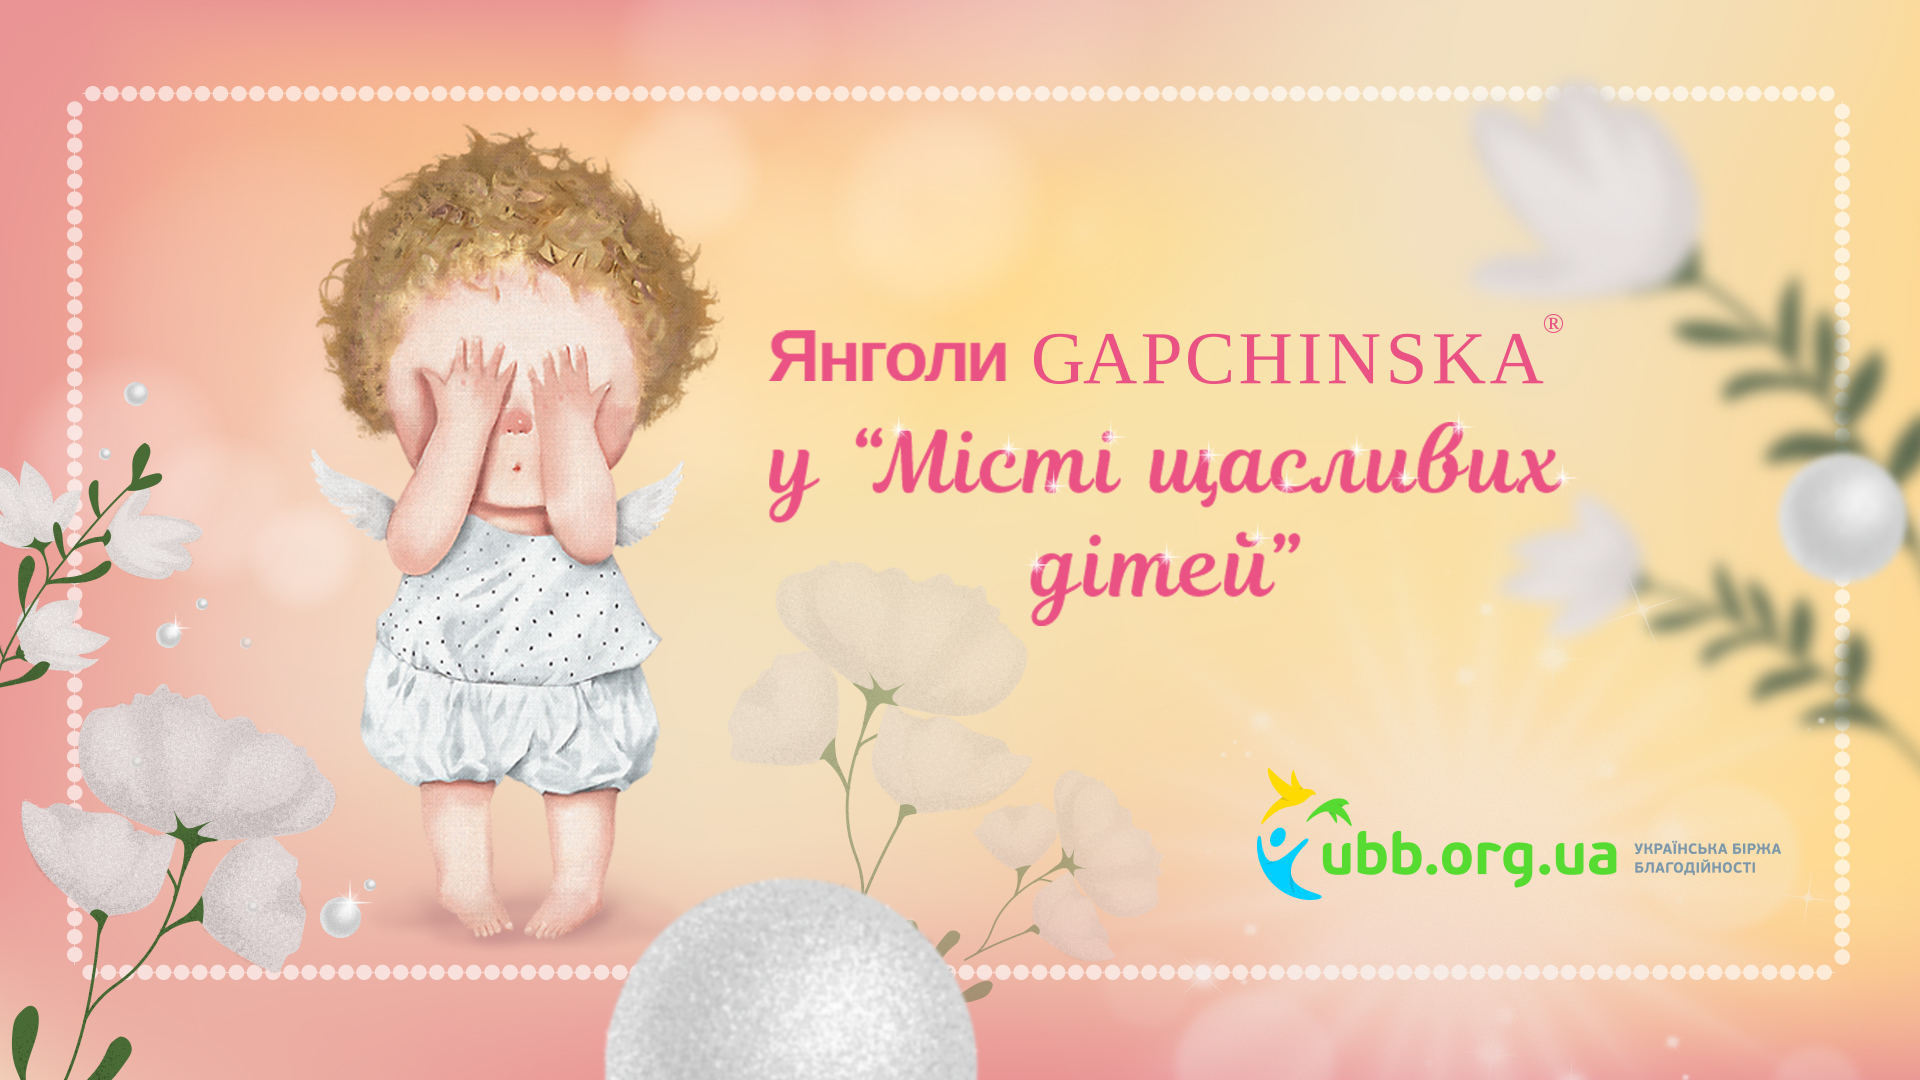 Brand GAPCHINSKA initiates a charity project for the Day of Happiness